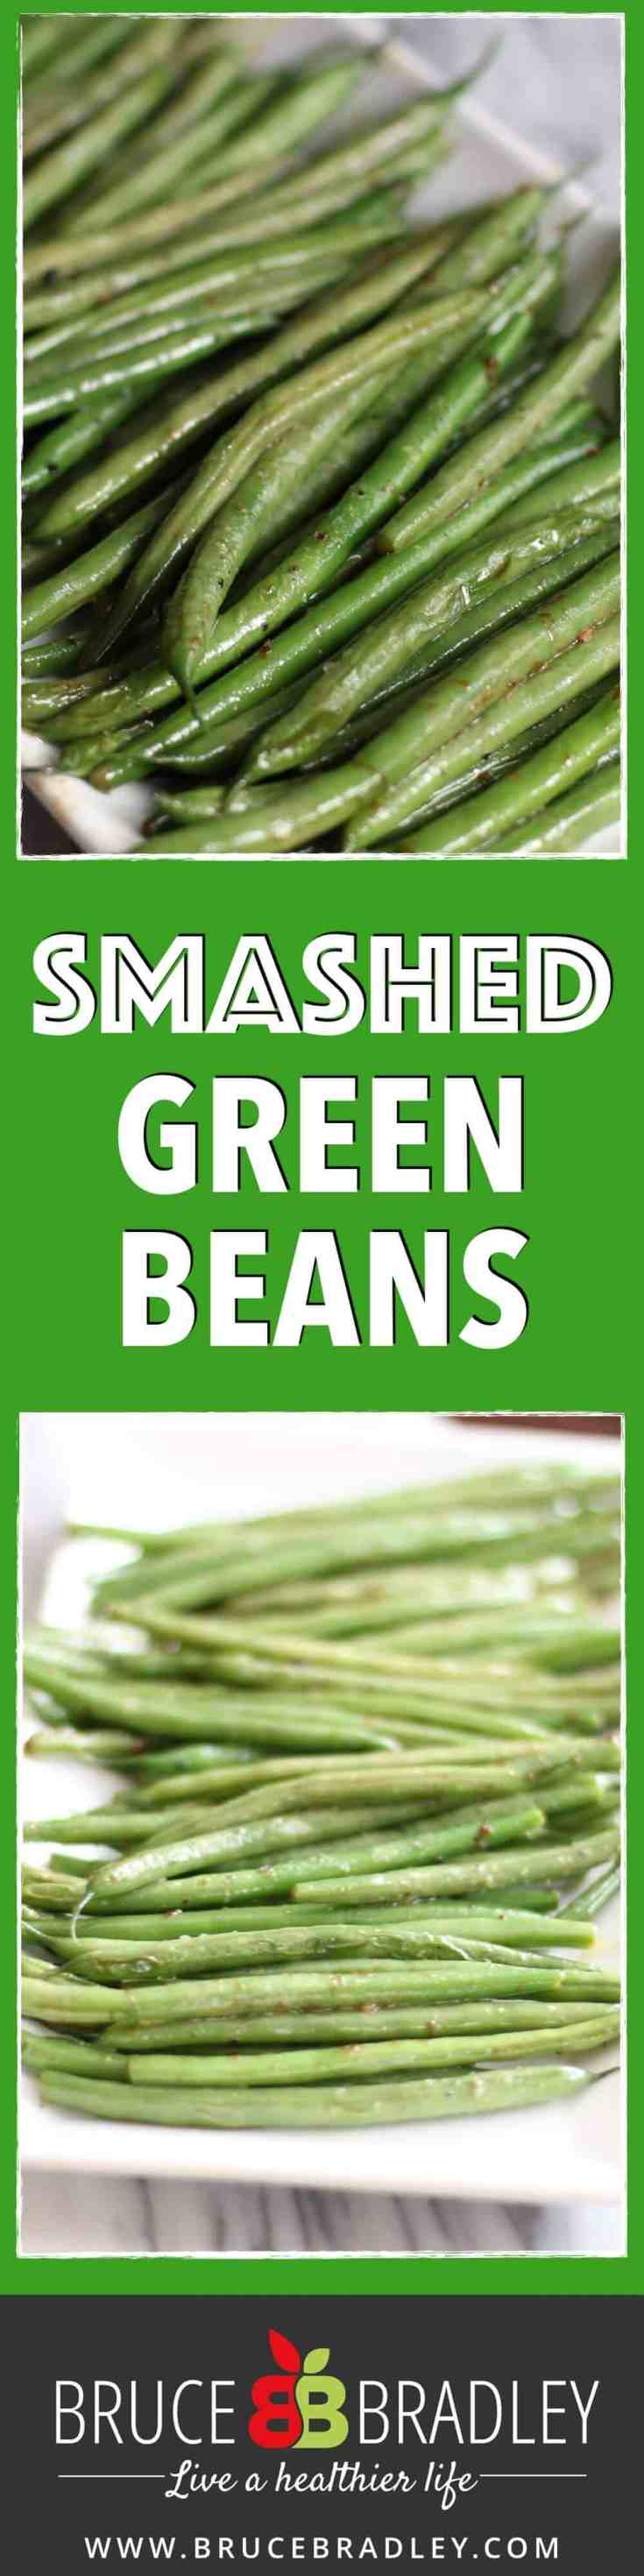 Tired of your boring green beans? Then try this delicious twist made with a little garlic, oil, and top secret ingredient! Can you say yum!